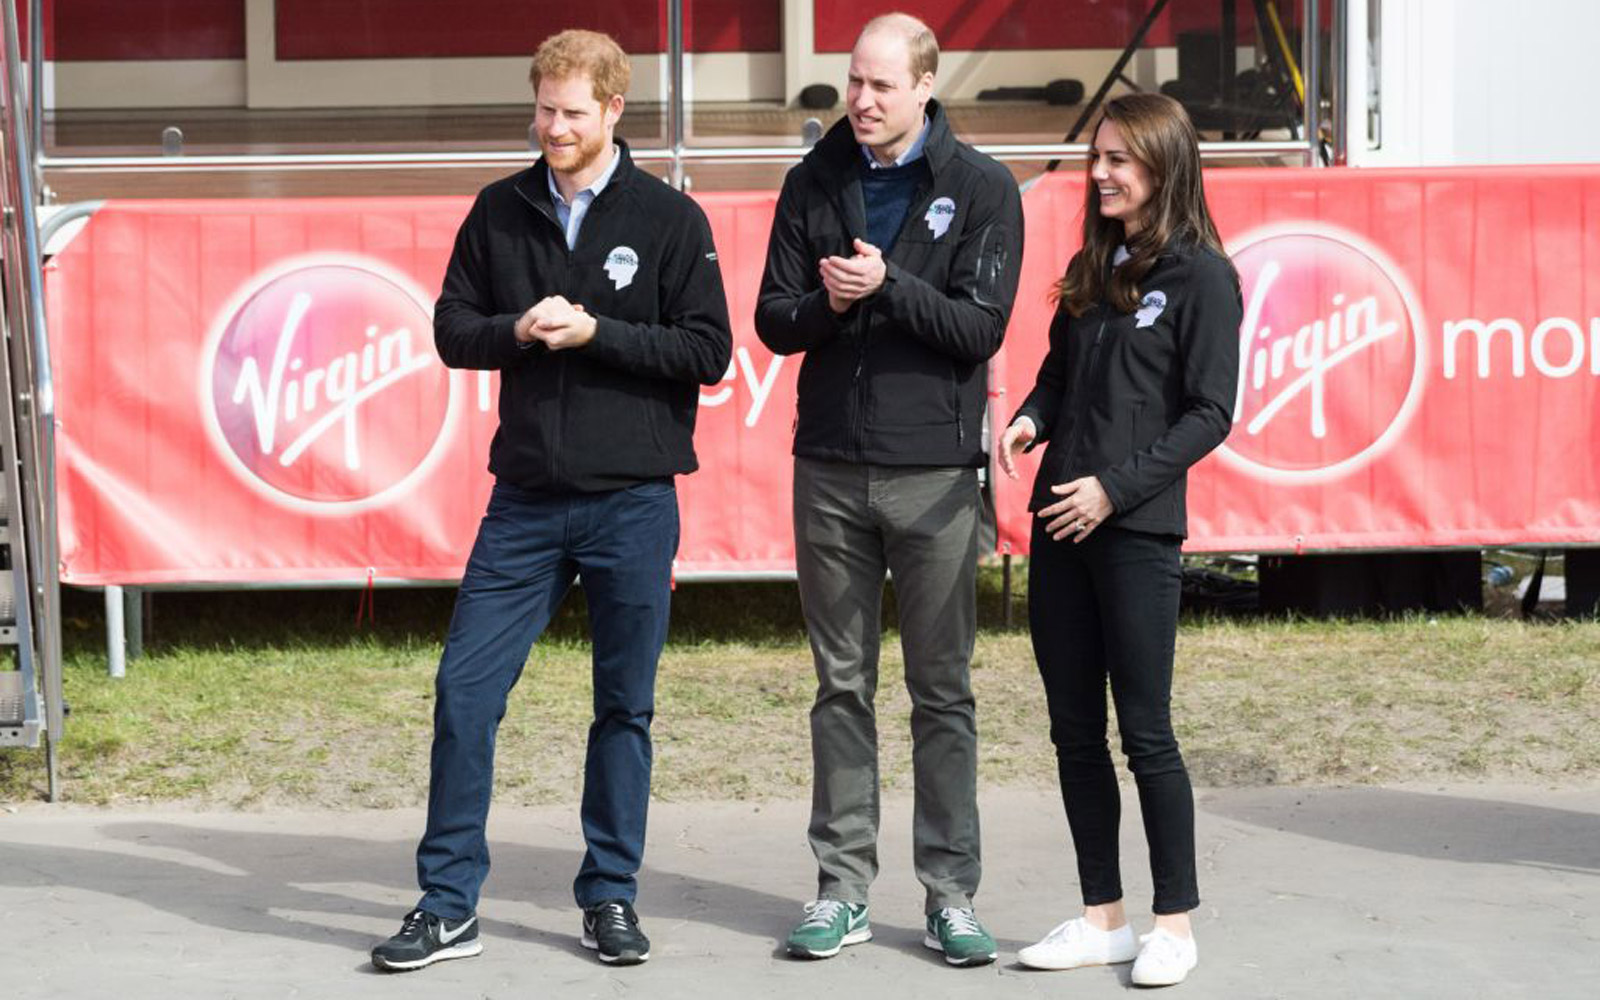 LONDON, UNITED KINGDOM - APRIL 23:  Prince William, Duke of Cambridge (C), Catherine, the Duchess of Cambridge (R) and  Prince Harry (L) watch the Elite men's race of the Virgin Money London Marathon in London, England on April 23, 2017. (Photo by Ray T